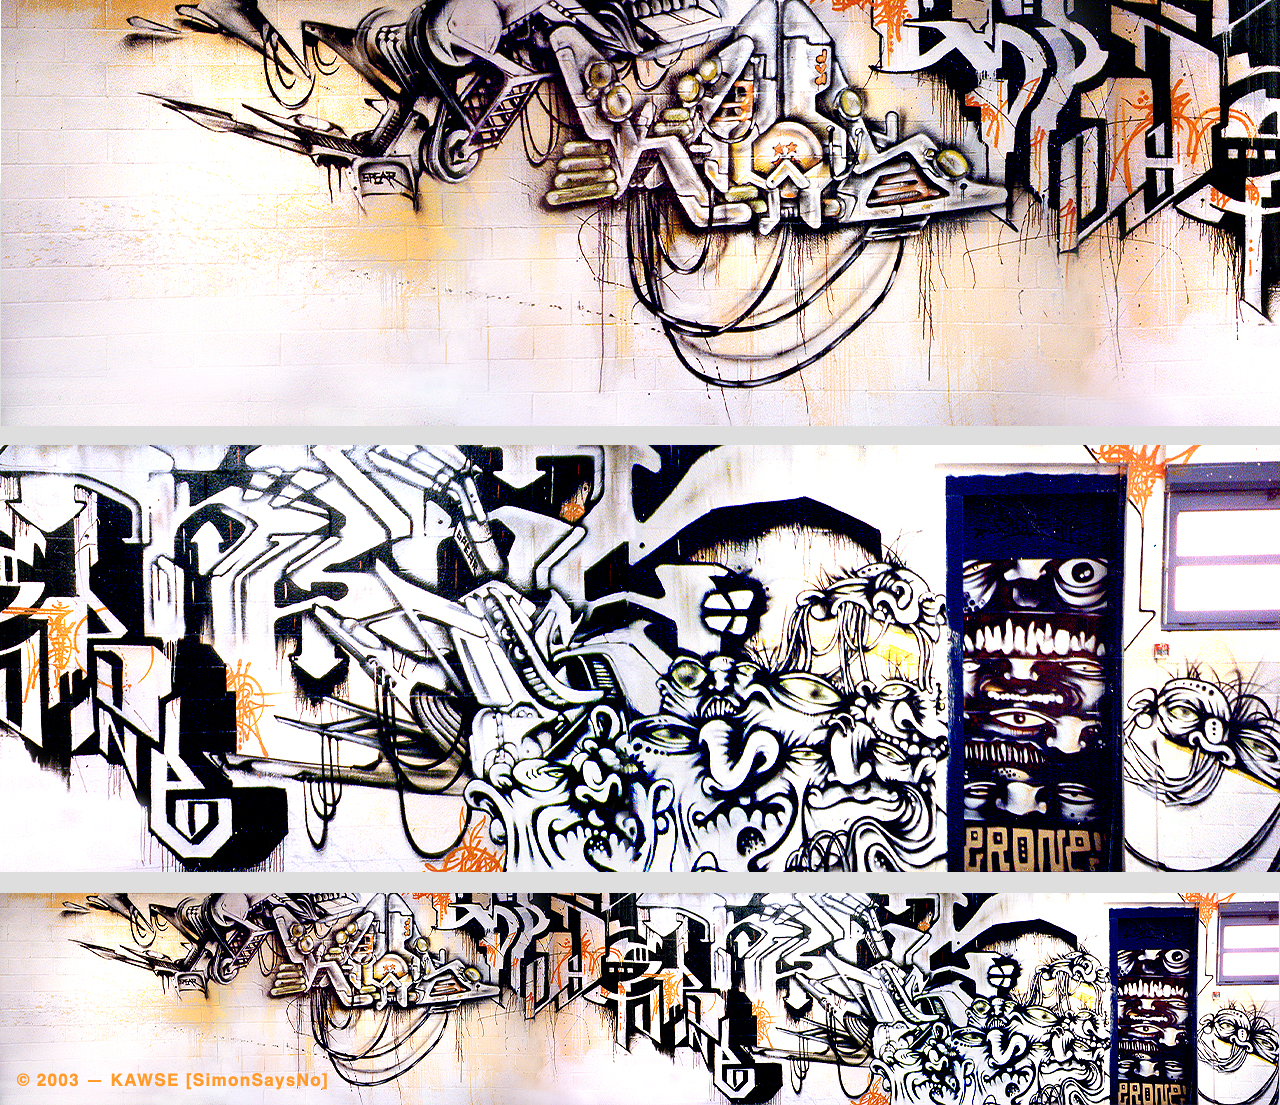 KAWSE 2003 — NEW GRAPHIC WAY with MERCUROCROM Collective [Wall]